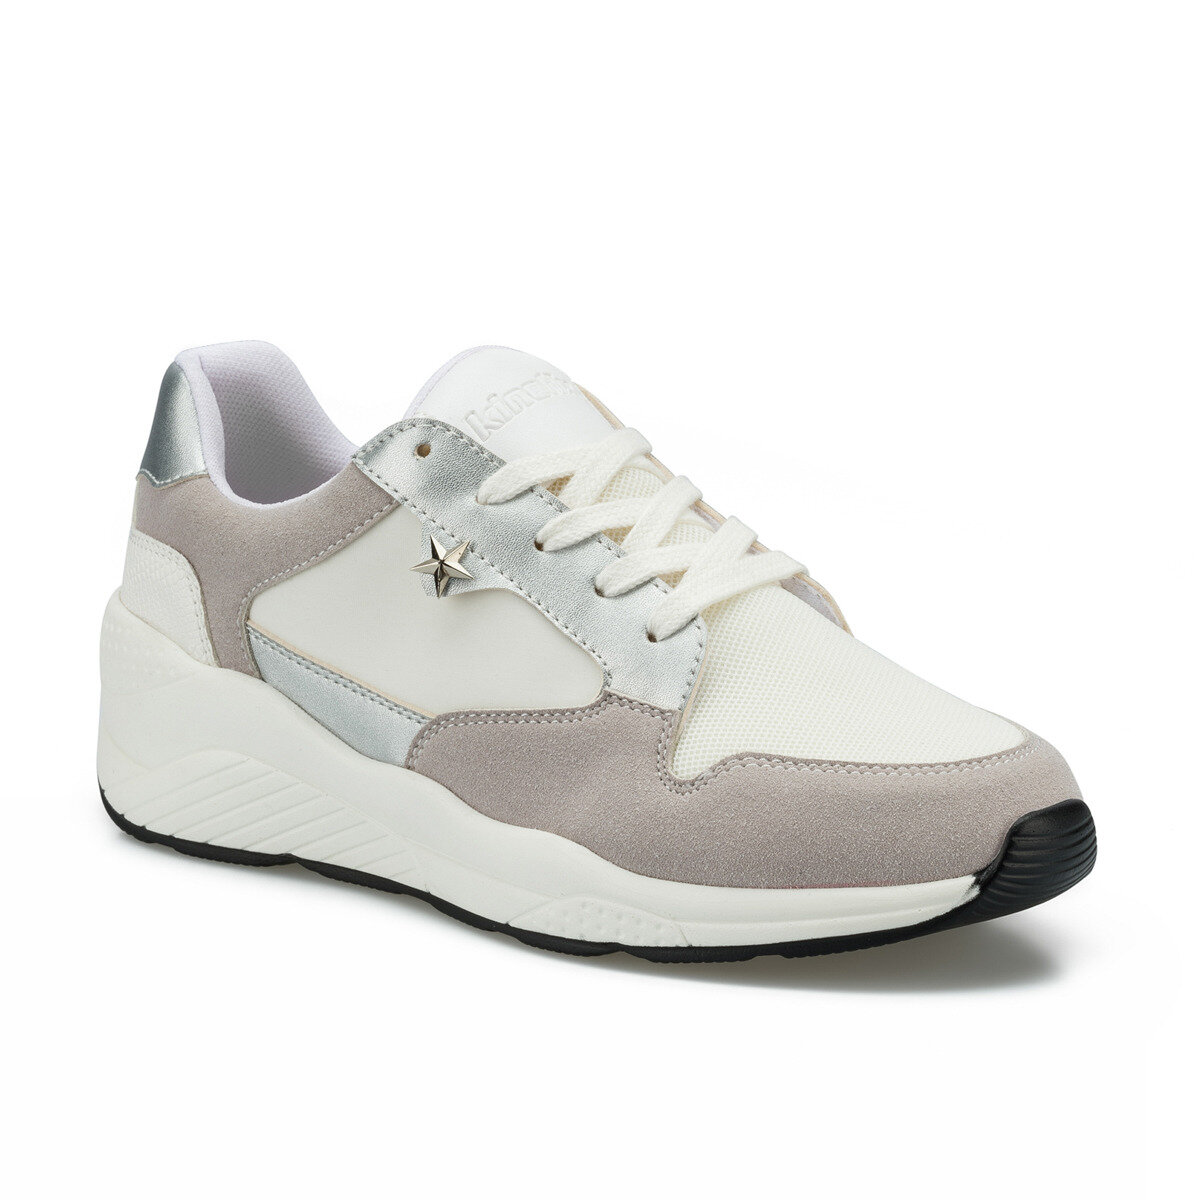 FLO GINGER White Women 'S Sports Shoes KINETIX